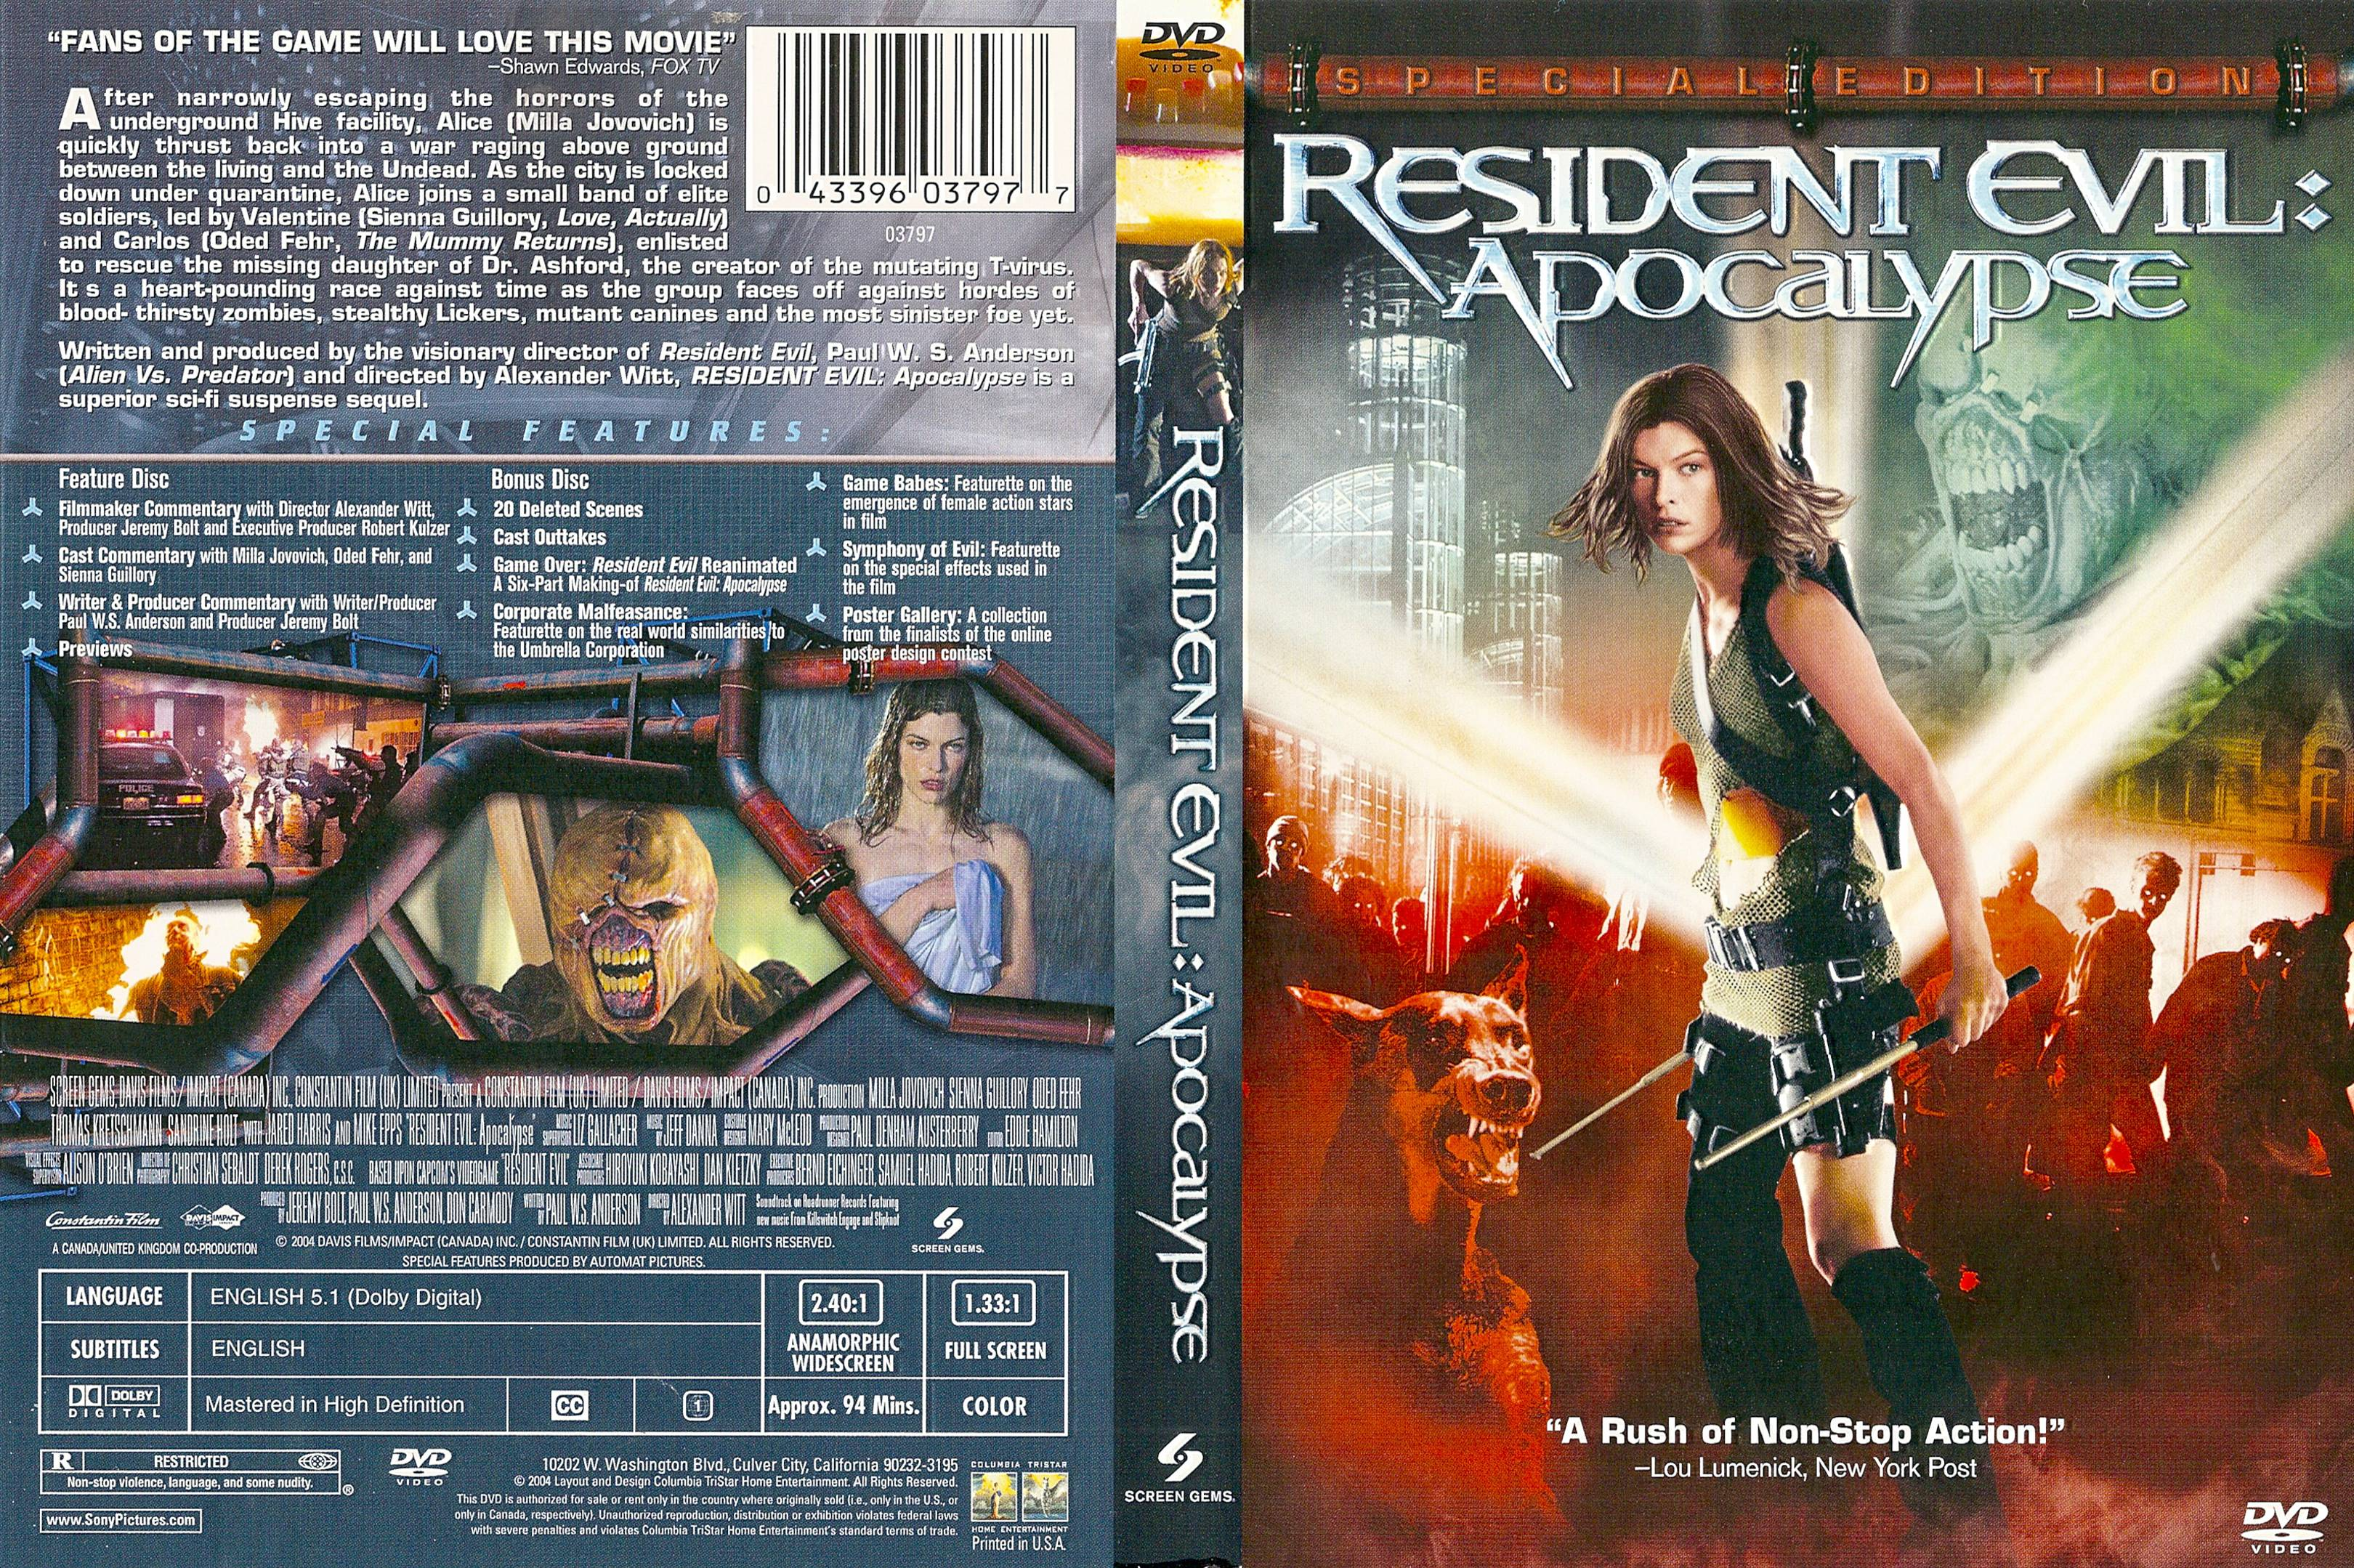 COVERS BOX SK ::: Resident Evil: Apocalypse (2004) - high quality